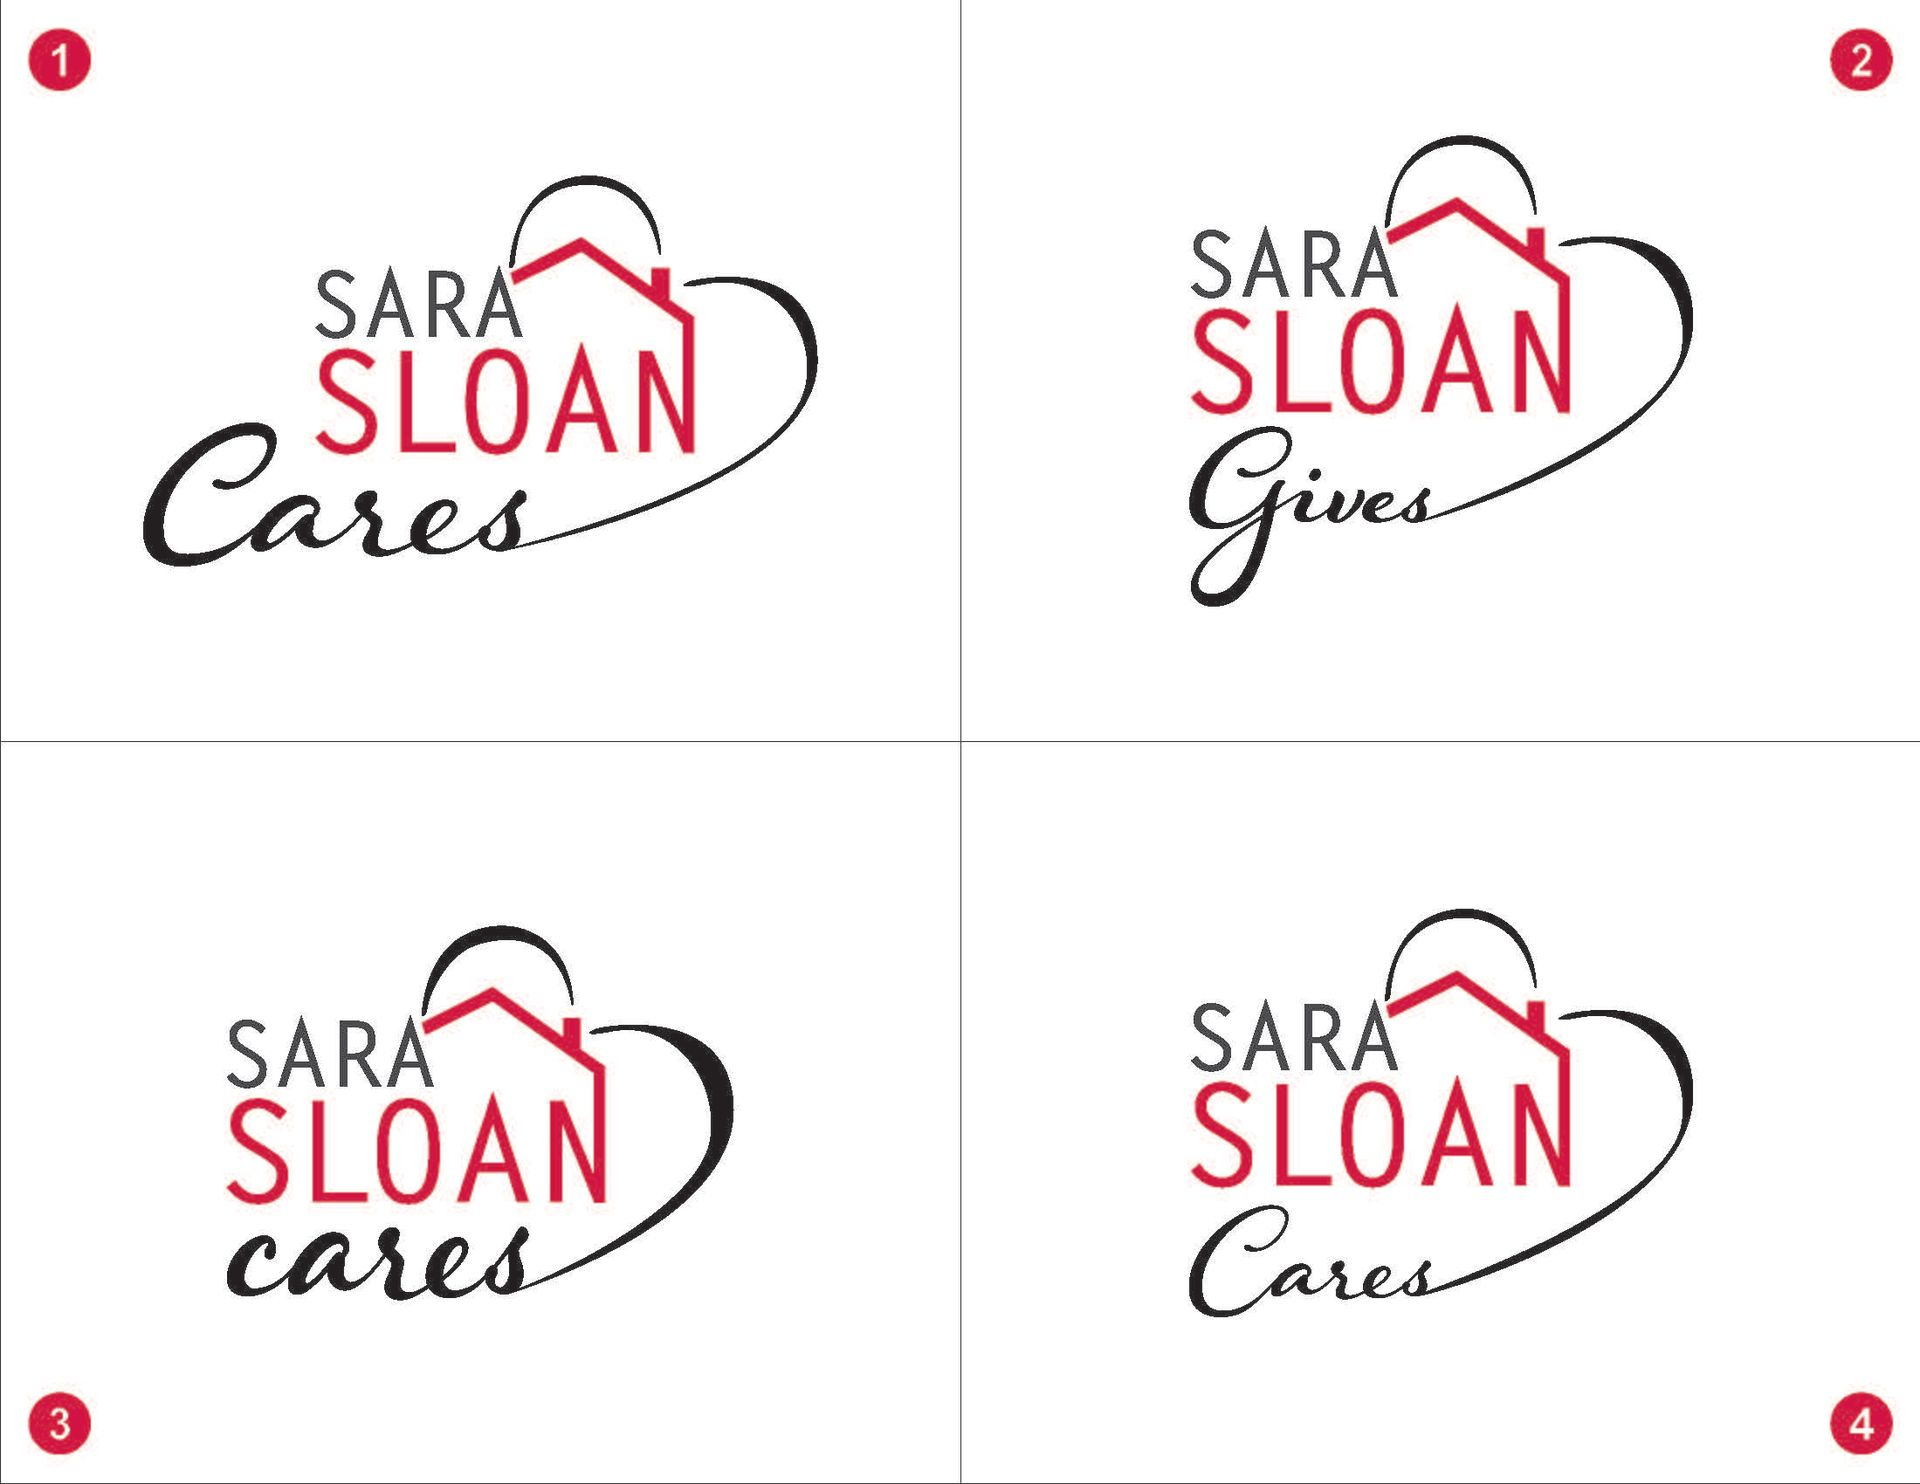 Sara Sloan Team gives back campaign